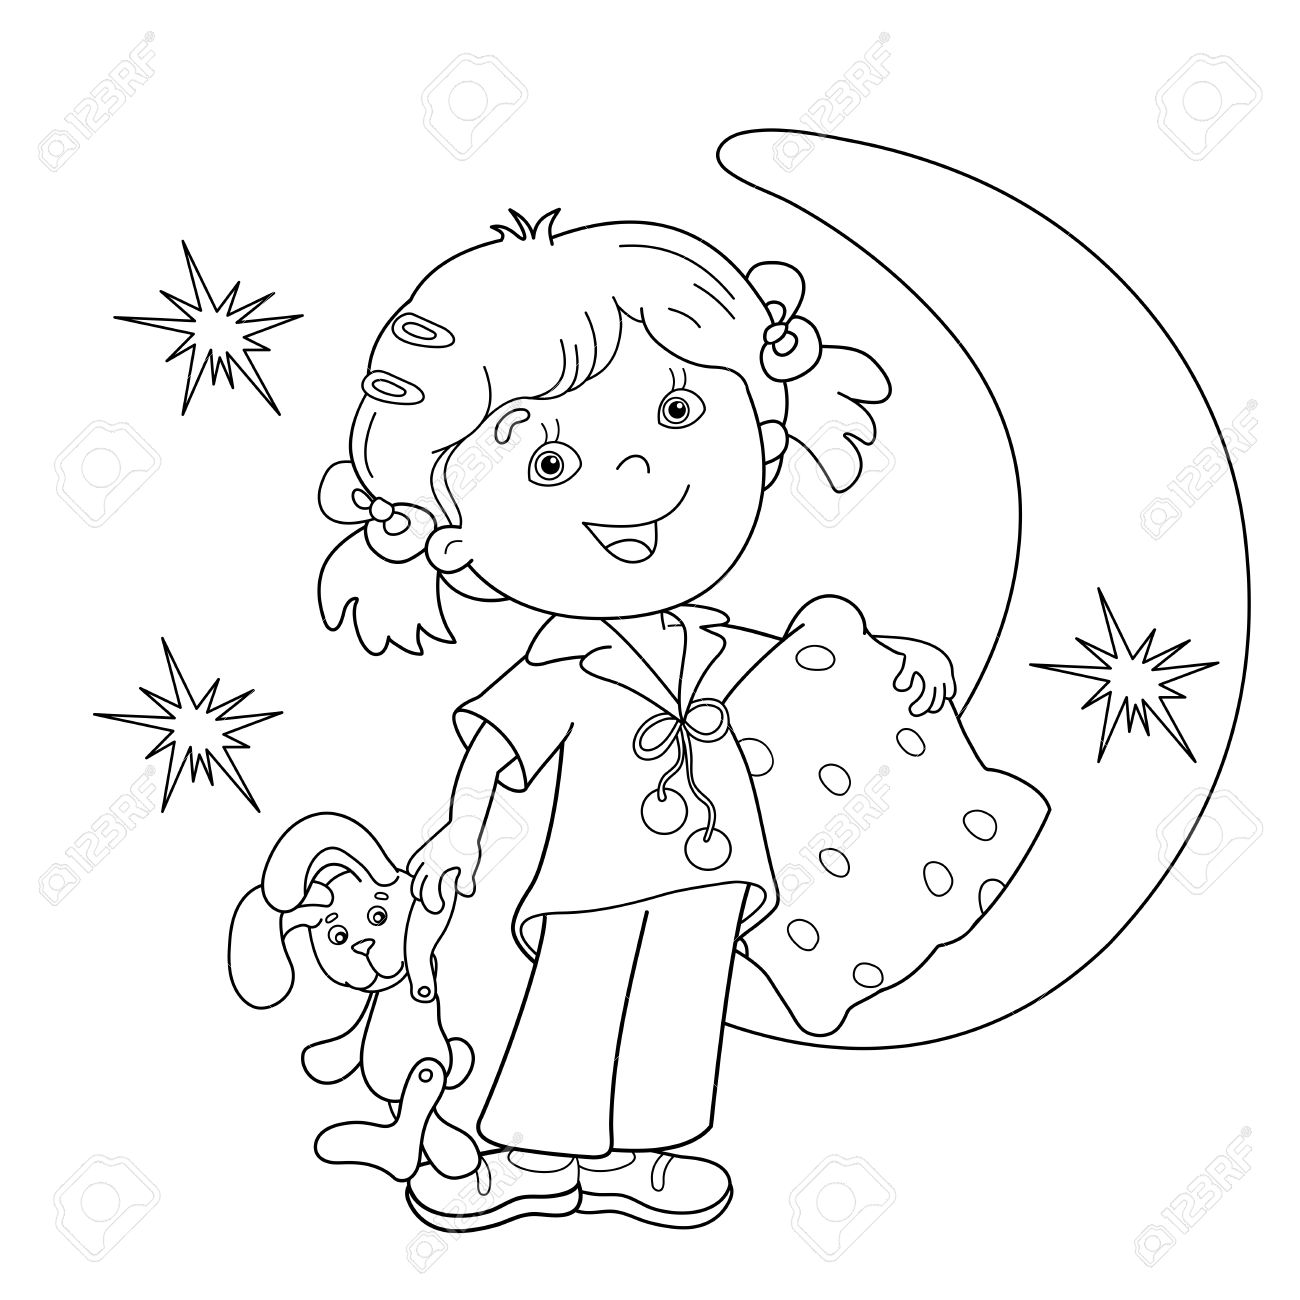 coloring page outline of cartoon girl in pajamas with pillow